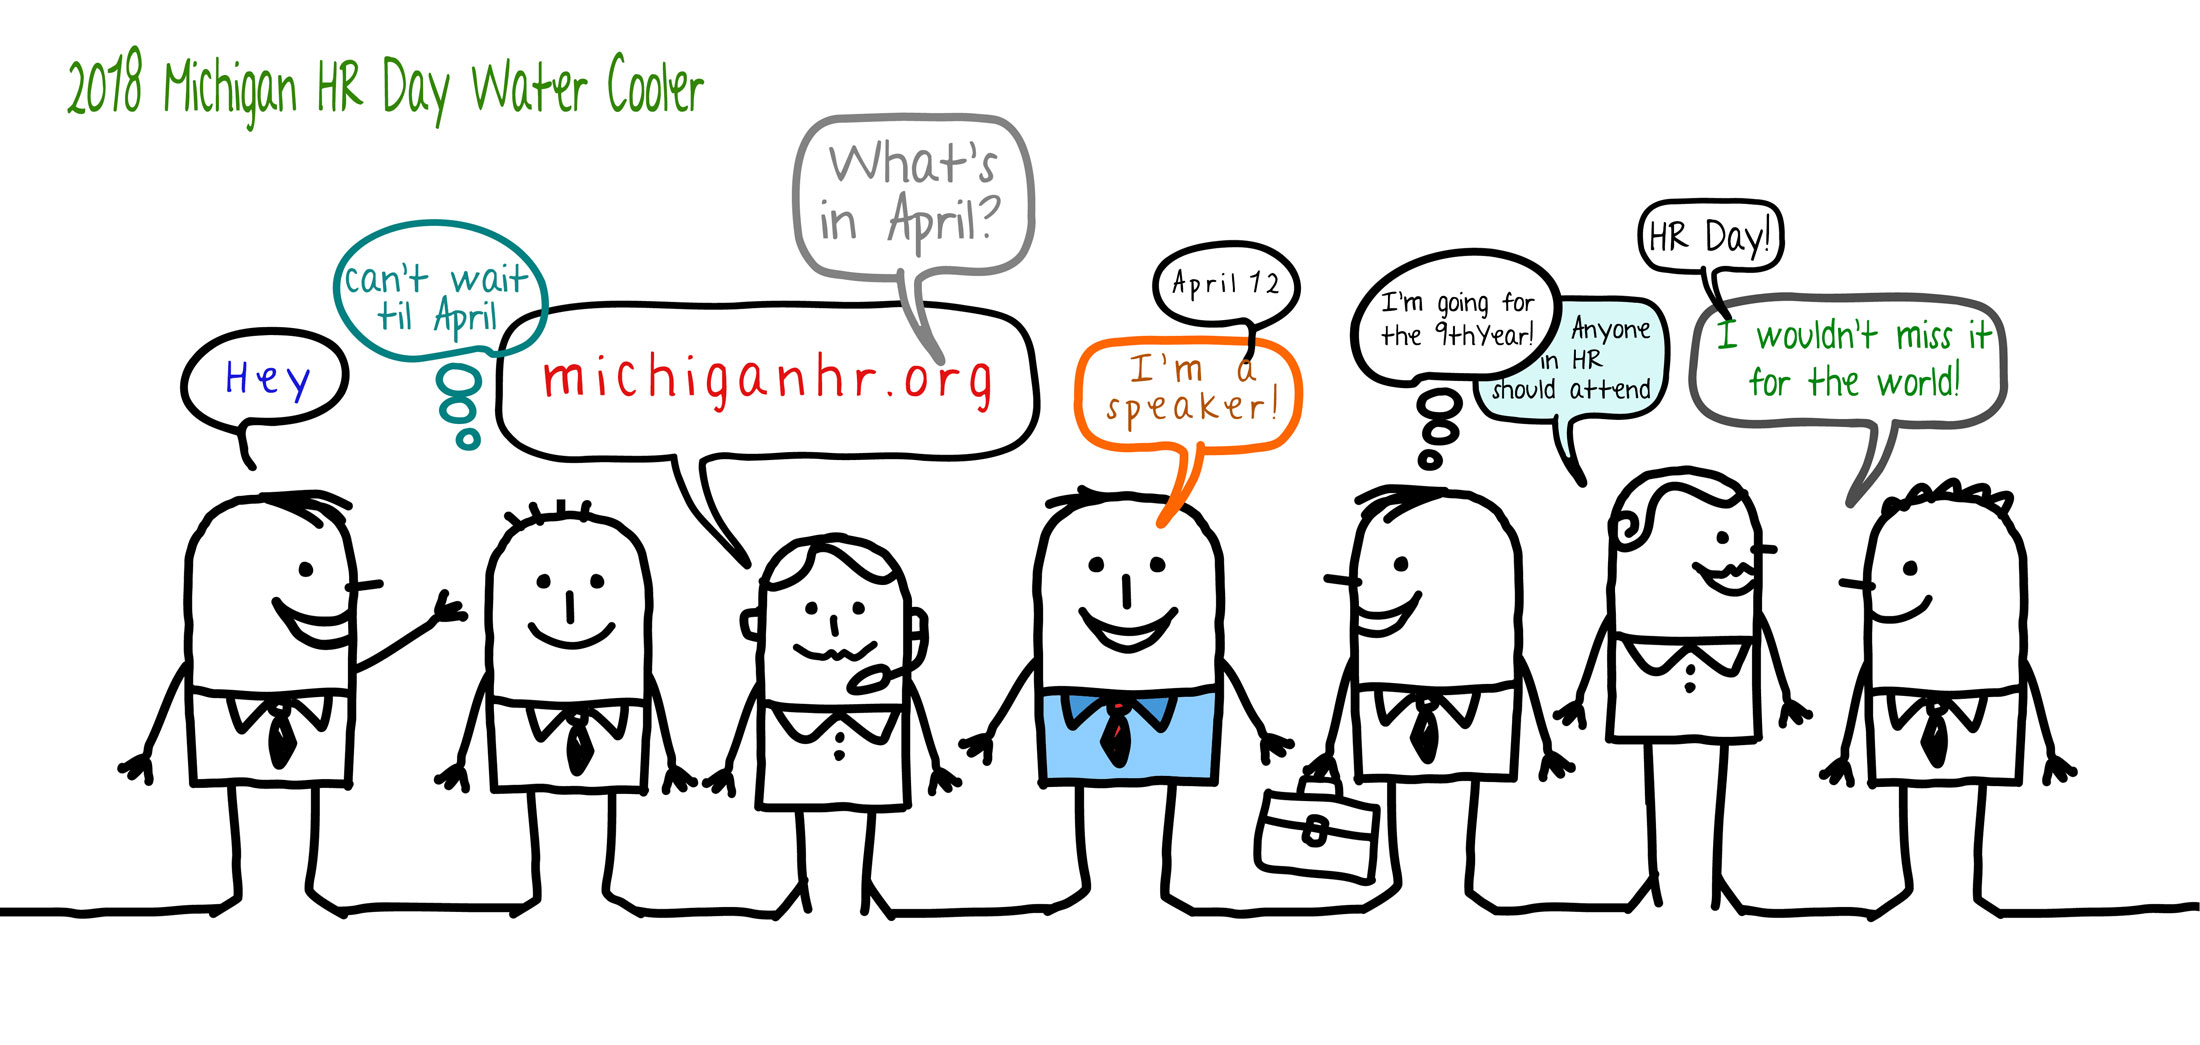 2200x1045 michigan hr day 2018 speech bubble cartoon img